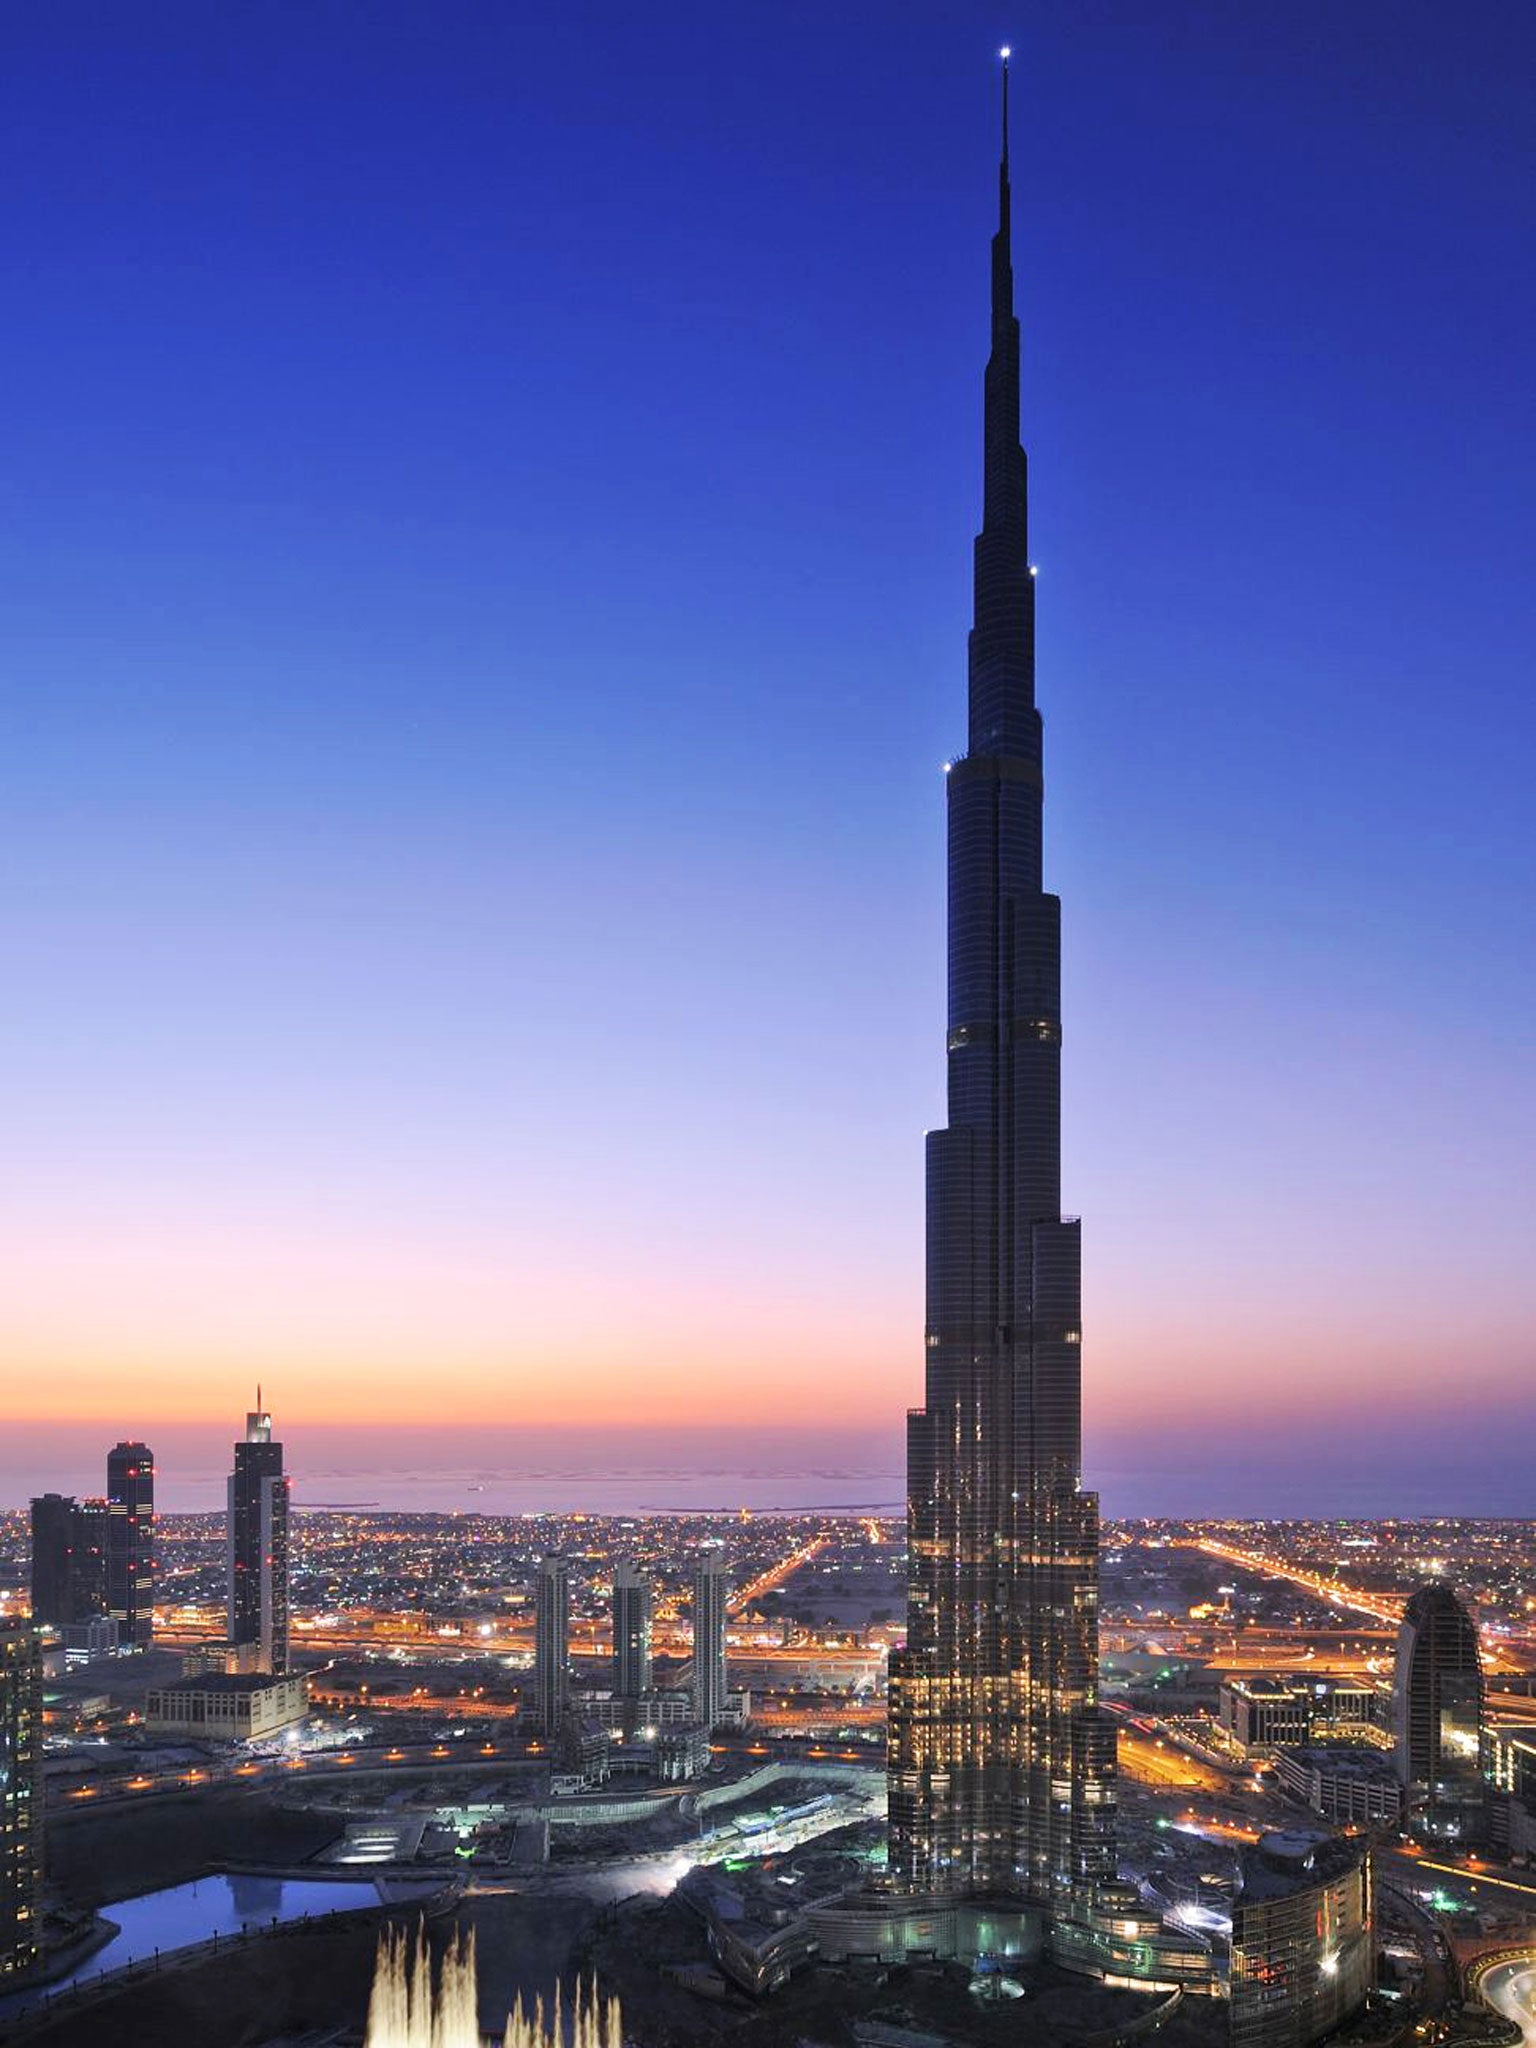 Dubai what 39 s not to like about opulent hotels glorious for Dubai hotels near burj khalifa